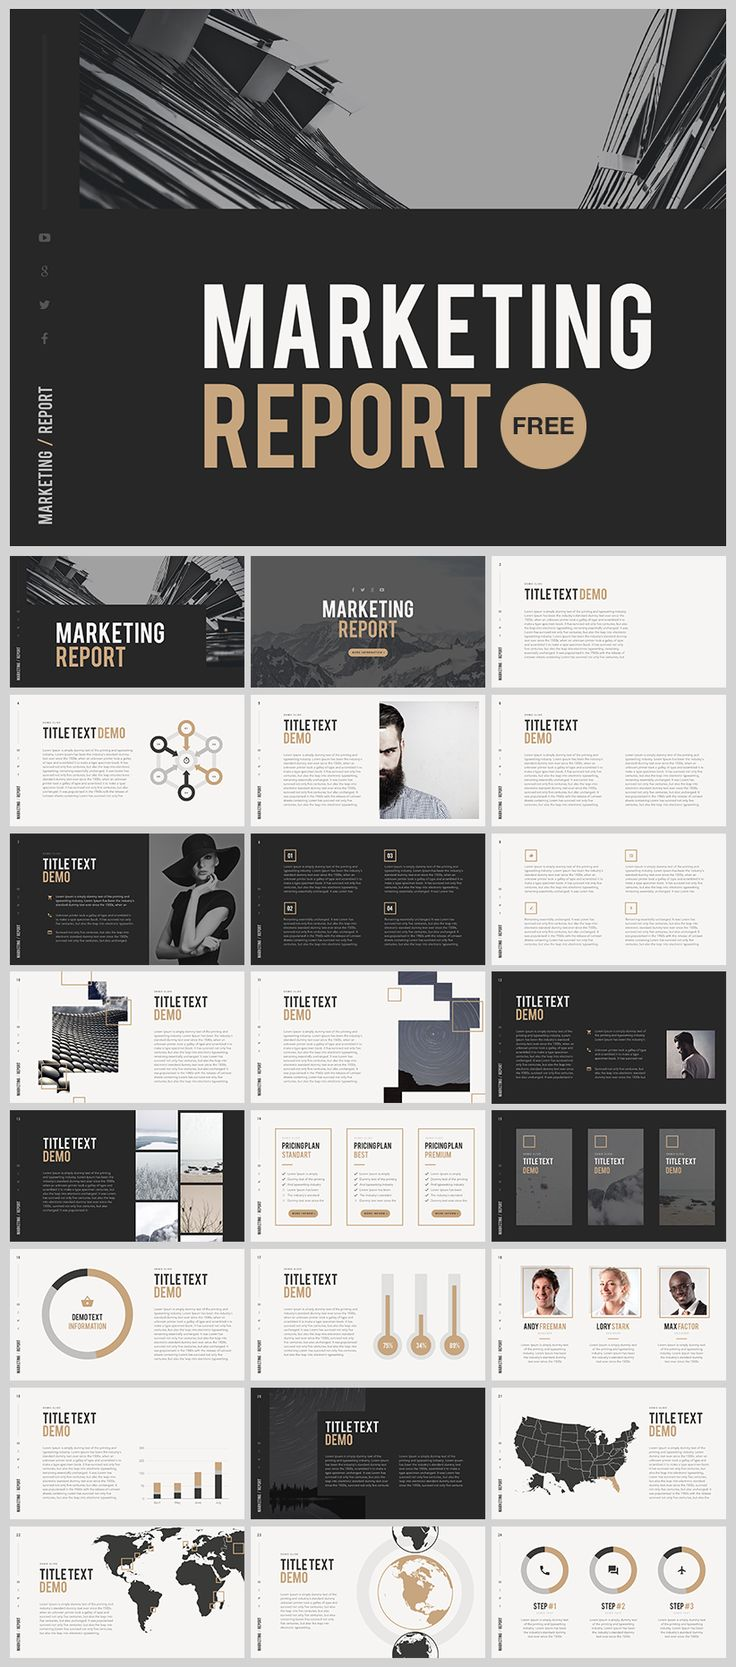 36 best free keynote template images on pinterest free keynote the marketing report free keynote template is designed to help at work more keynote templates for business and marketing toneelgroepblik Image collections